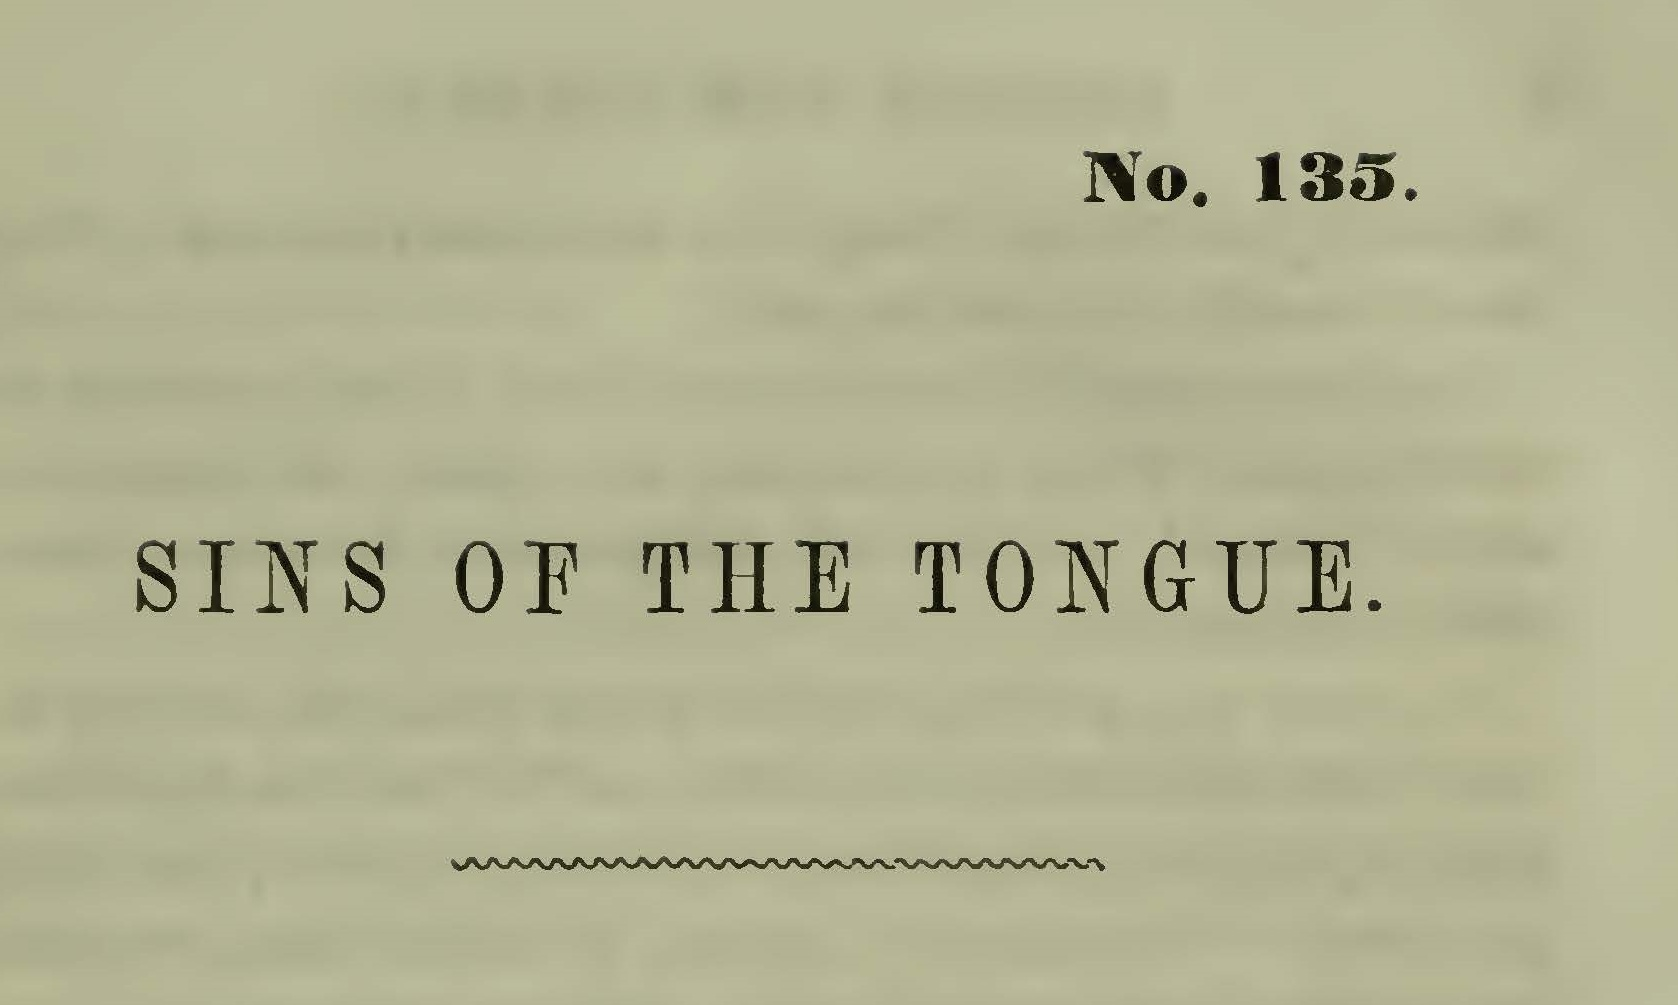 Plumer, William Swan, Sins of the Tongue Title Page.jpg